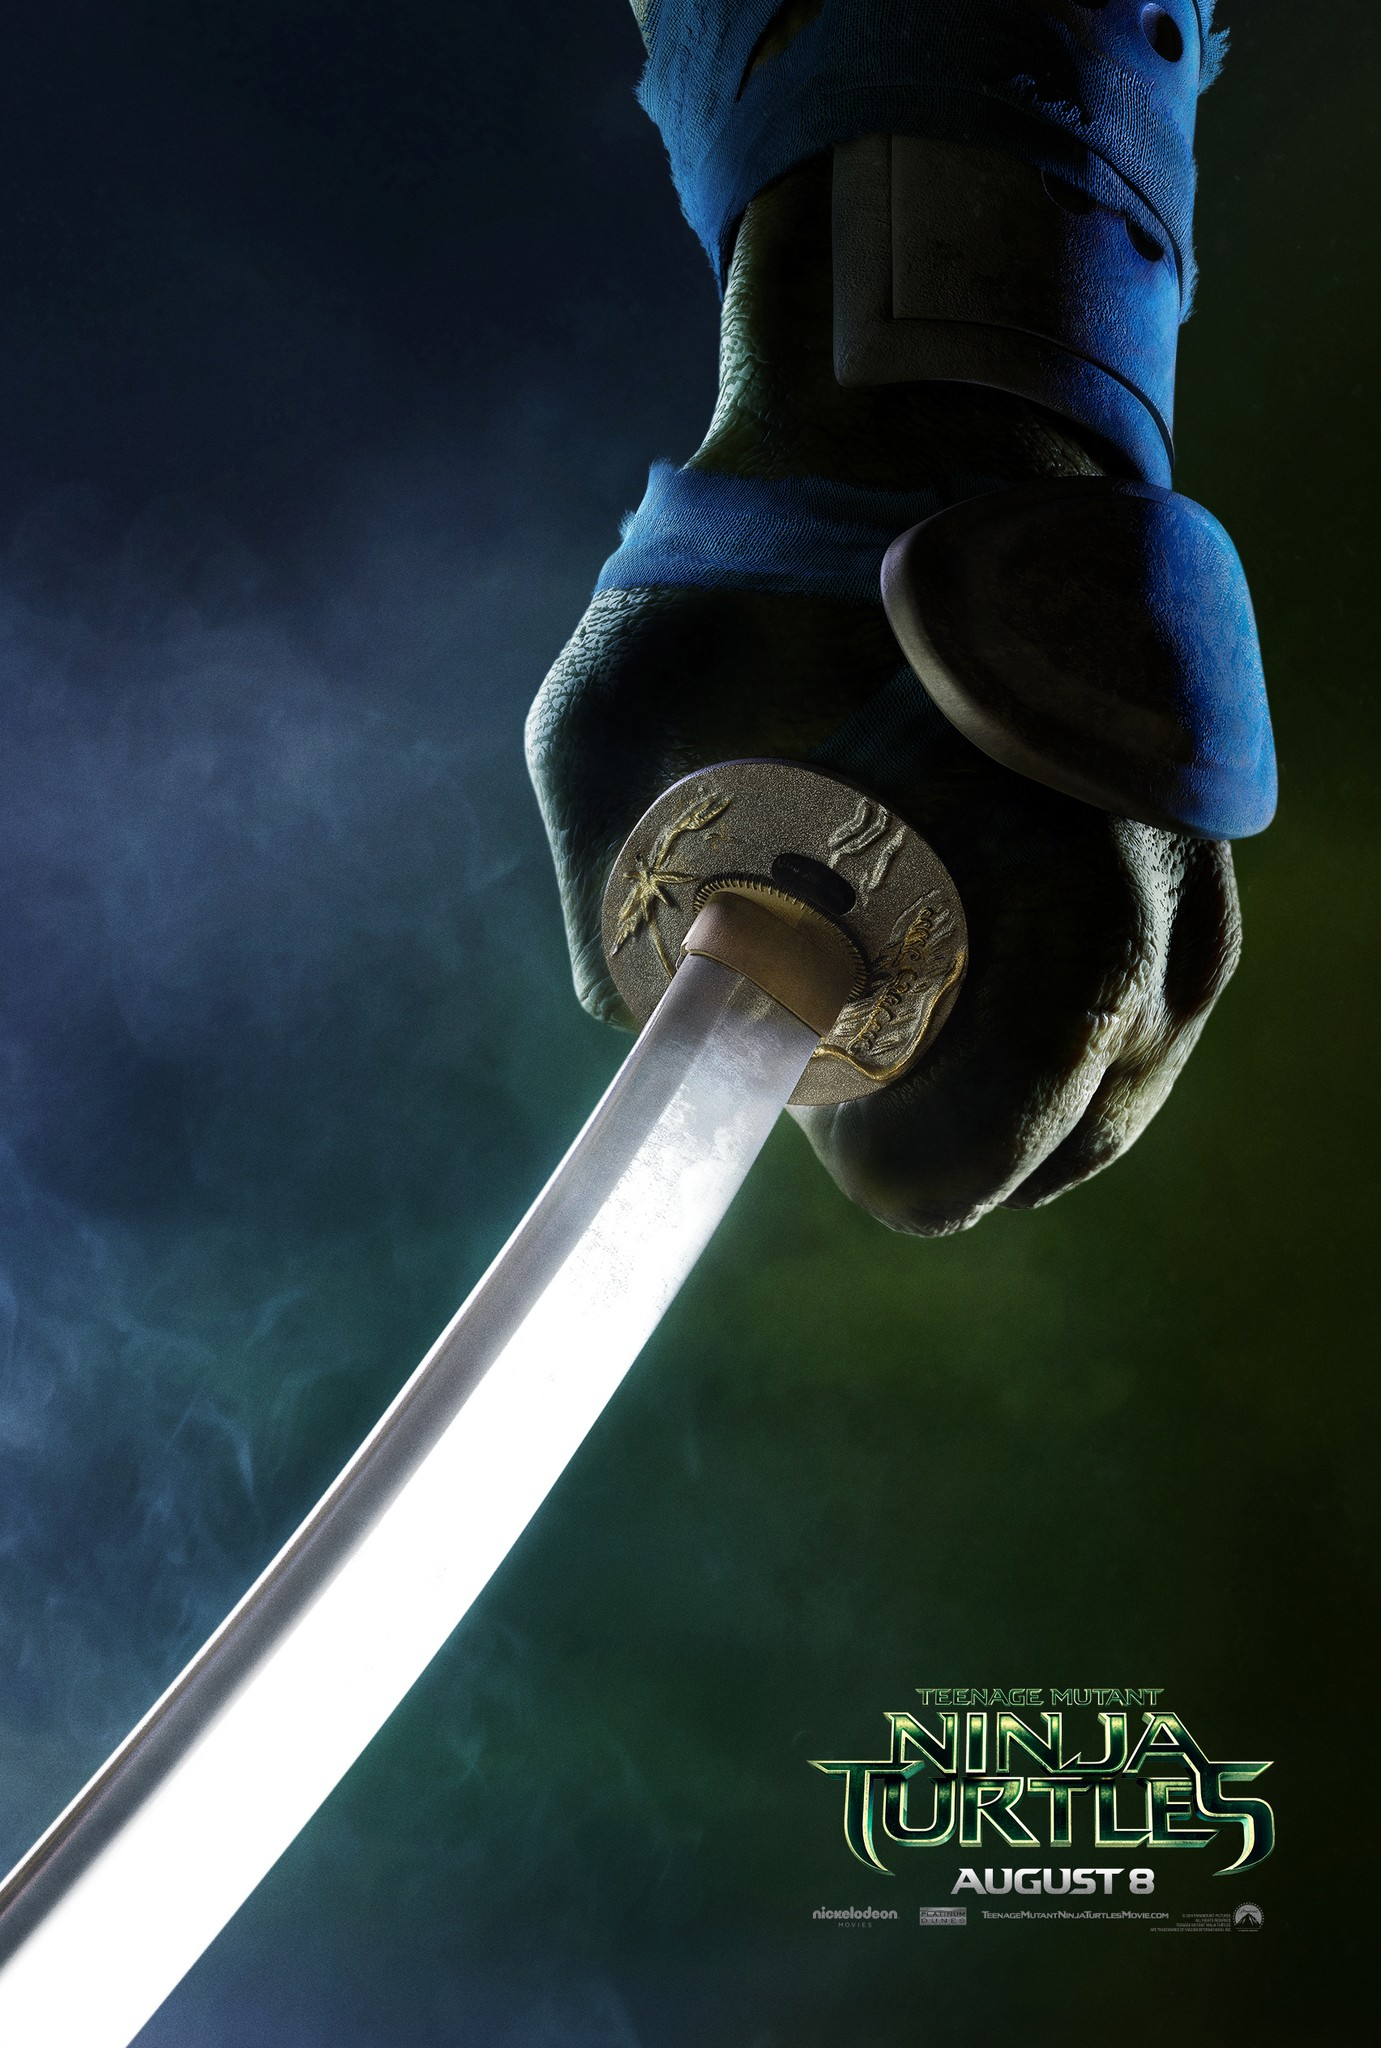 Teenage Mutant Ninja Turtles-Official Poster Banner PROMO XXLG-09ABRIL2014-01